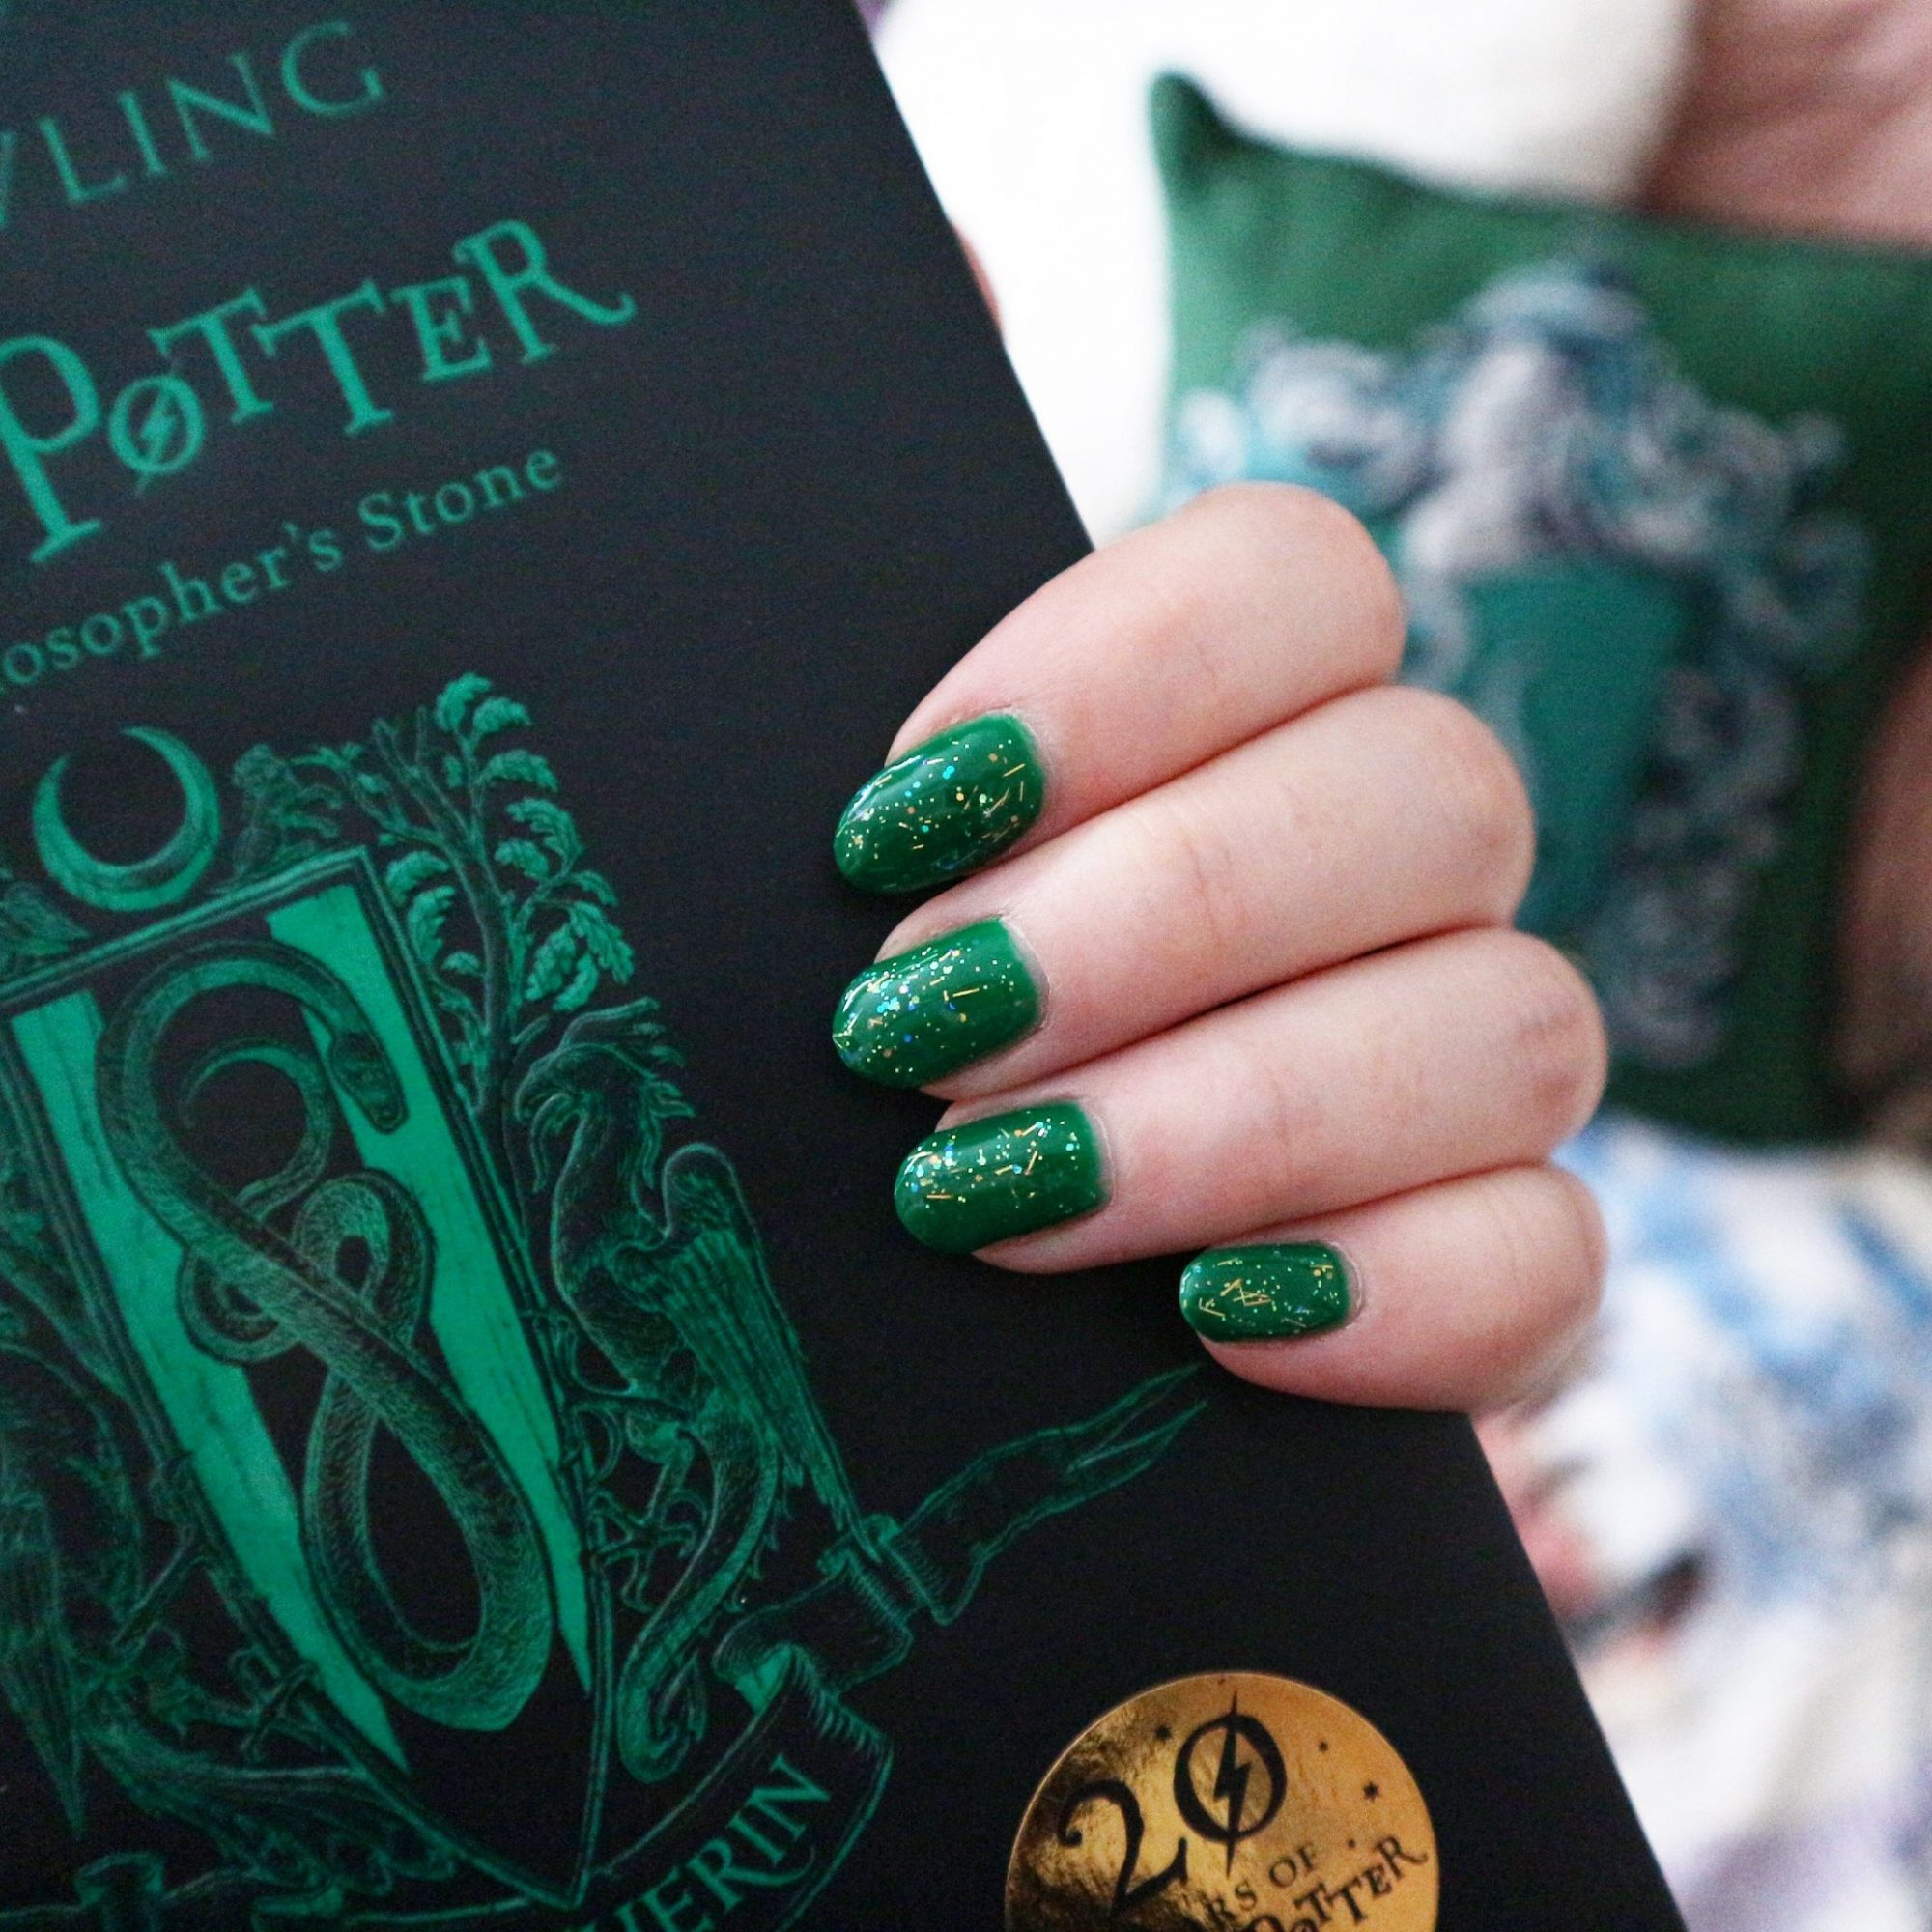 Harry Potter Slytherin House Book and Green Nails